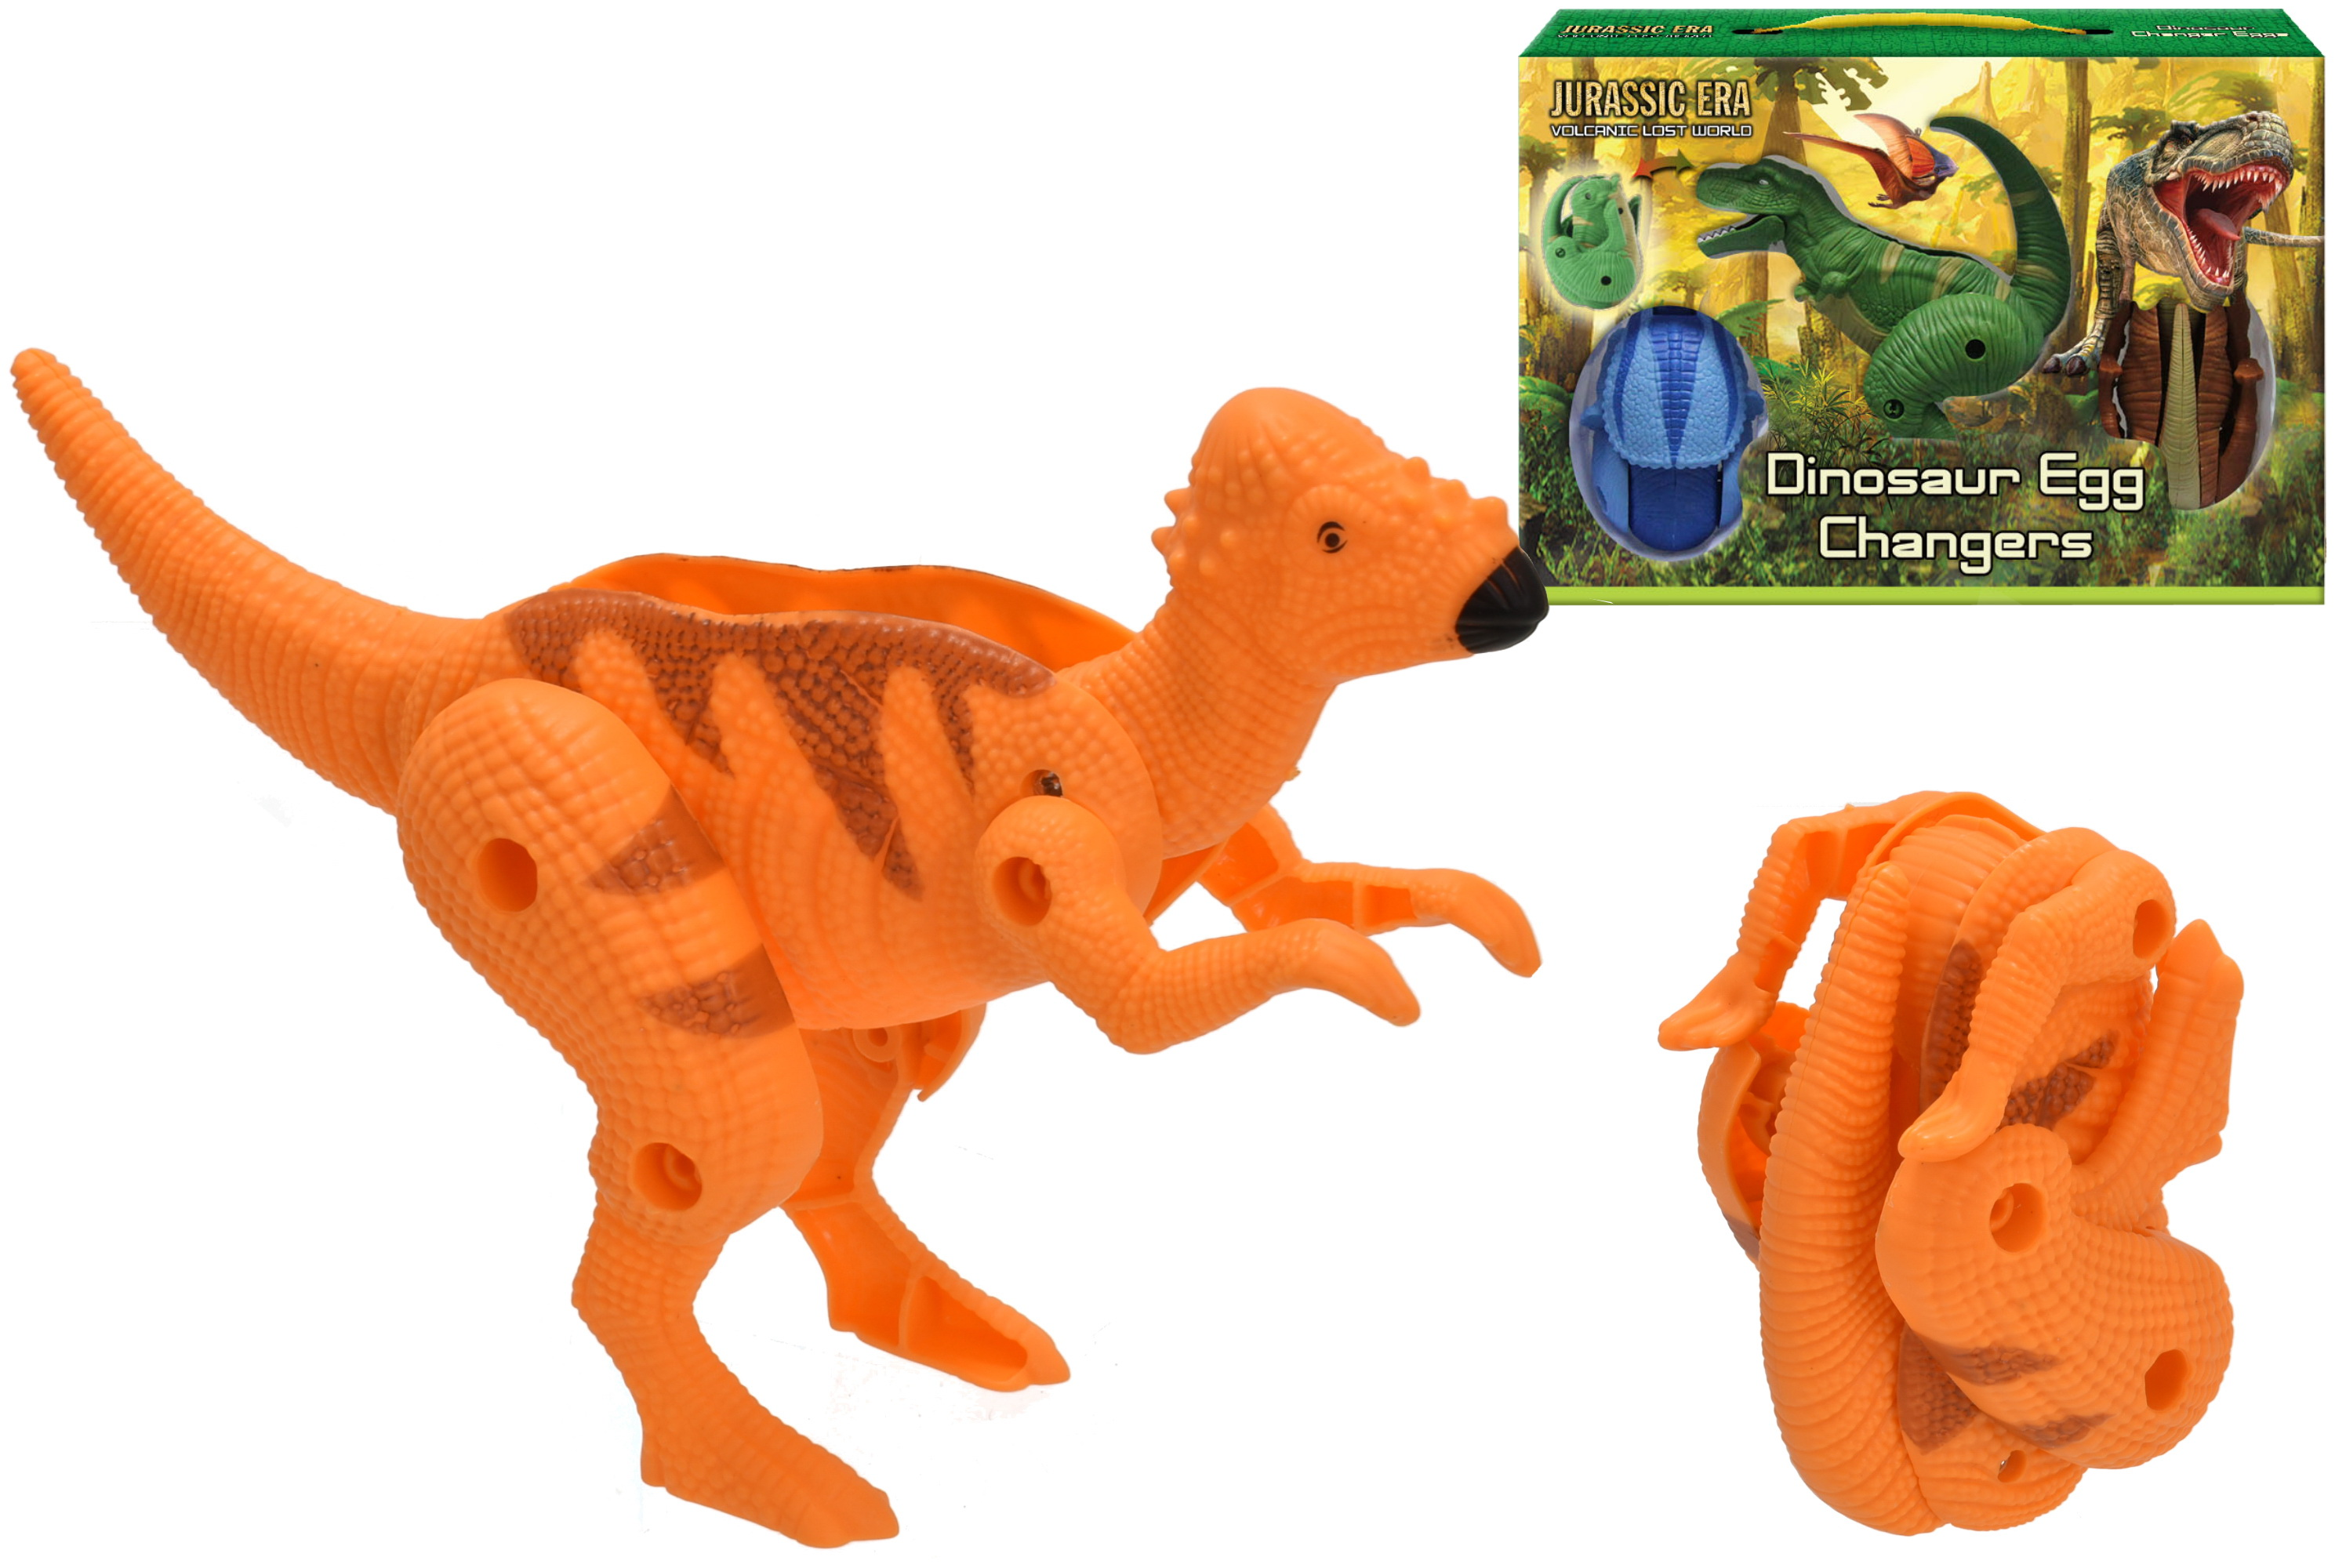 3pc Dinosaur Egg Changers In Colour Box